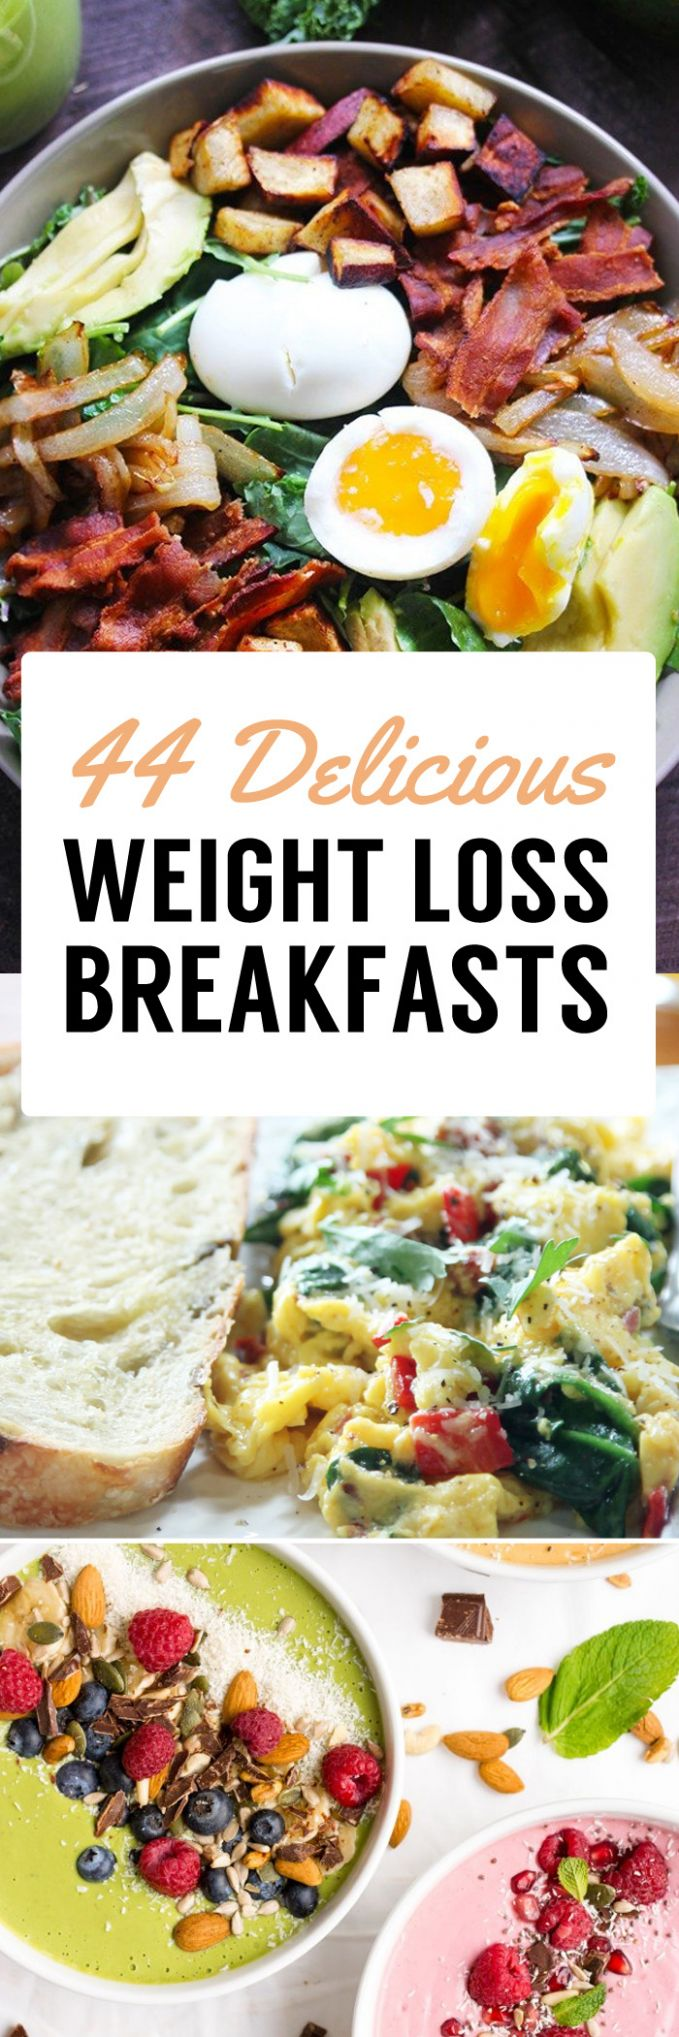 8 Weight Loss Breakfast Recipes To Jumpstart Your Fat Burning Day ..